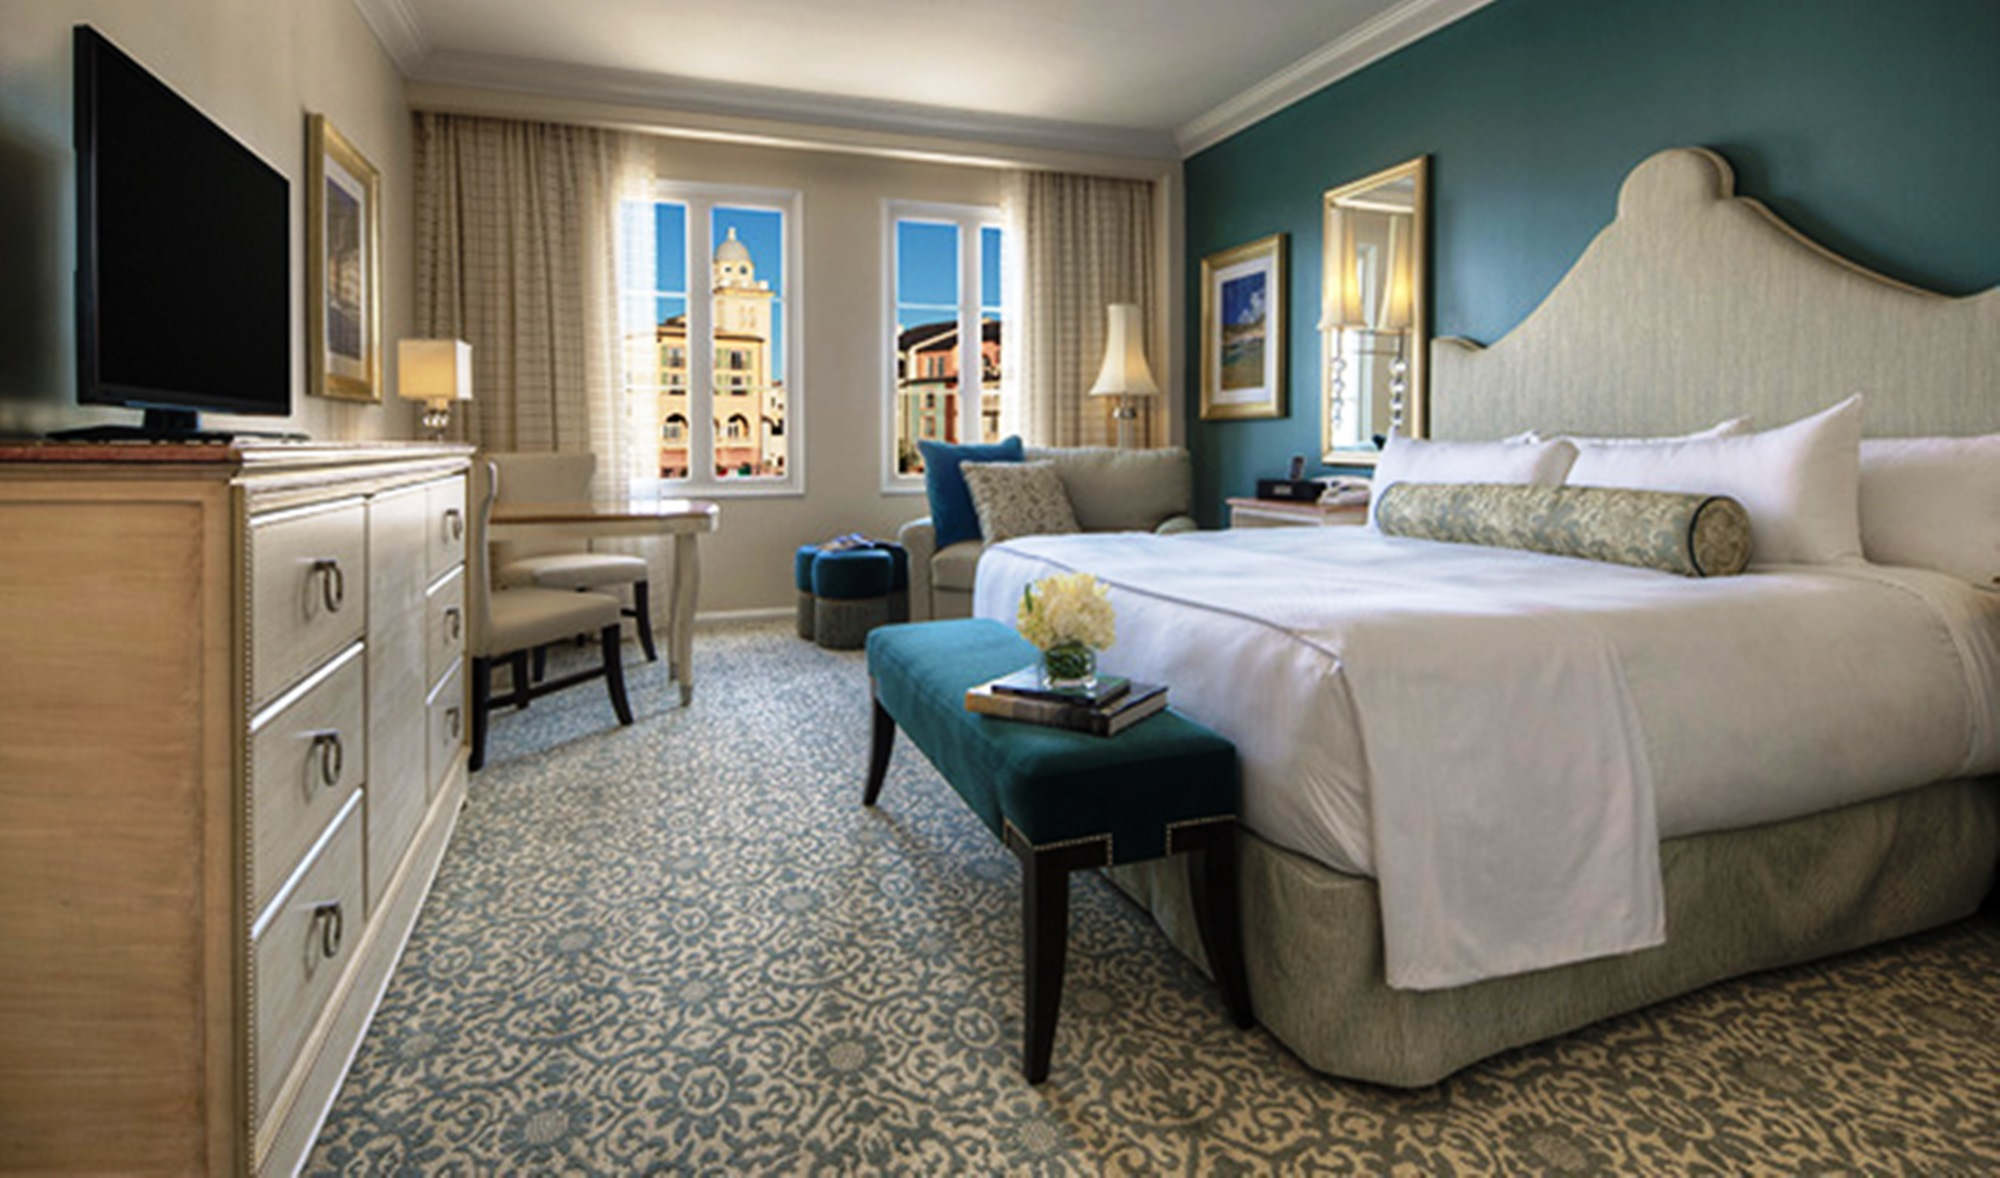 Portofino Bay Hotel deluxe king room with bay view